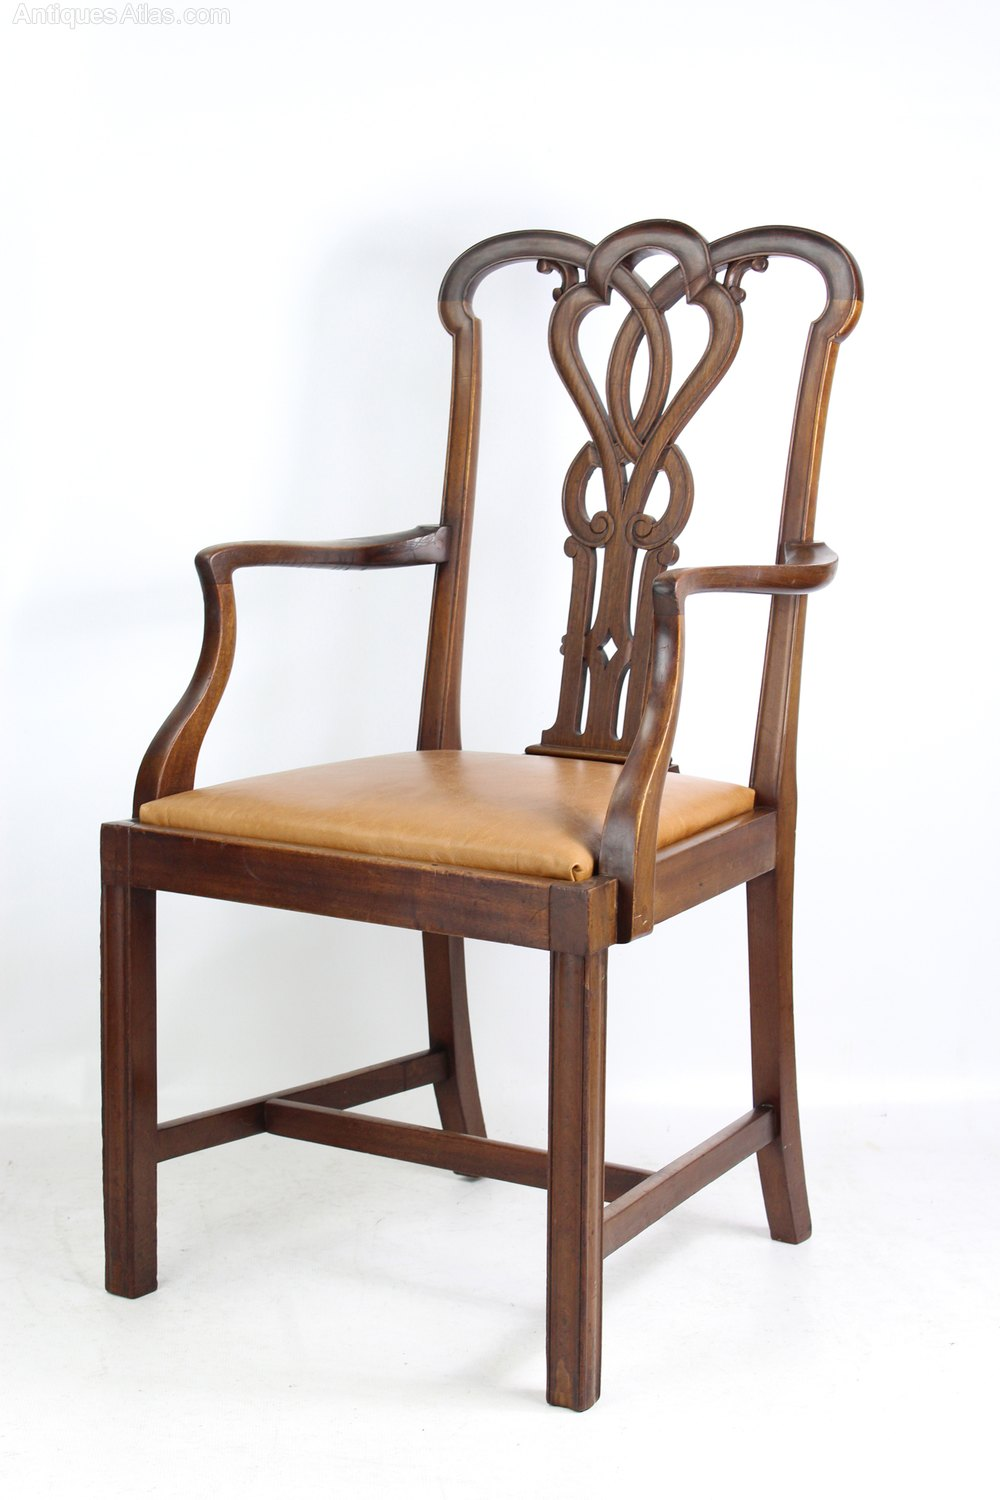 Surprising Edwardian Mahogany Open Armchair Or Desk Chair Antiques Atlas Ncnpc Chair Design For Home Ncnpcorg